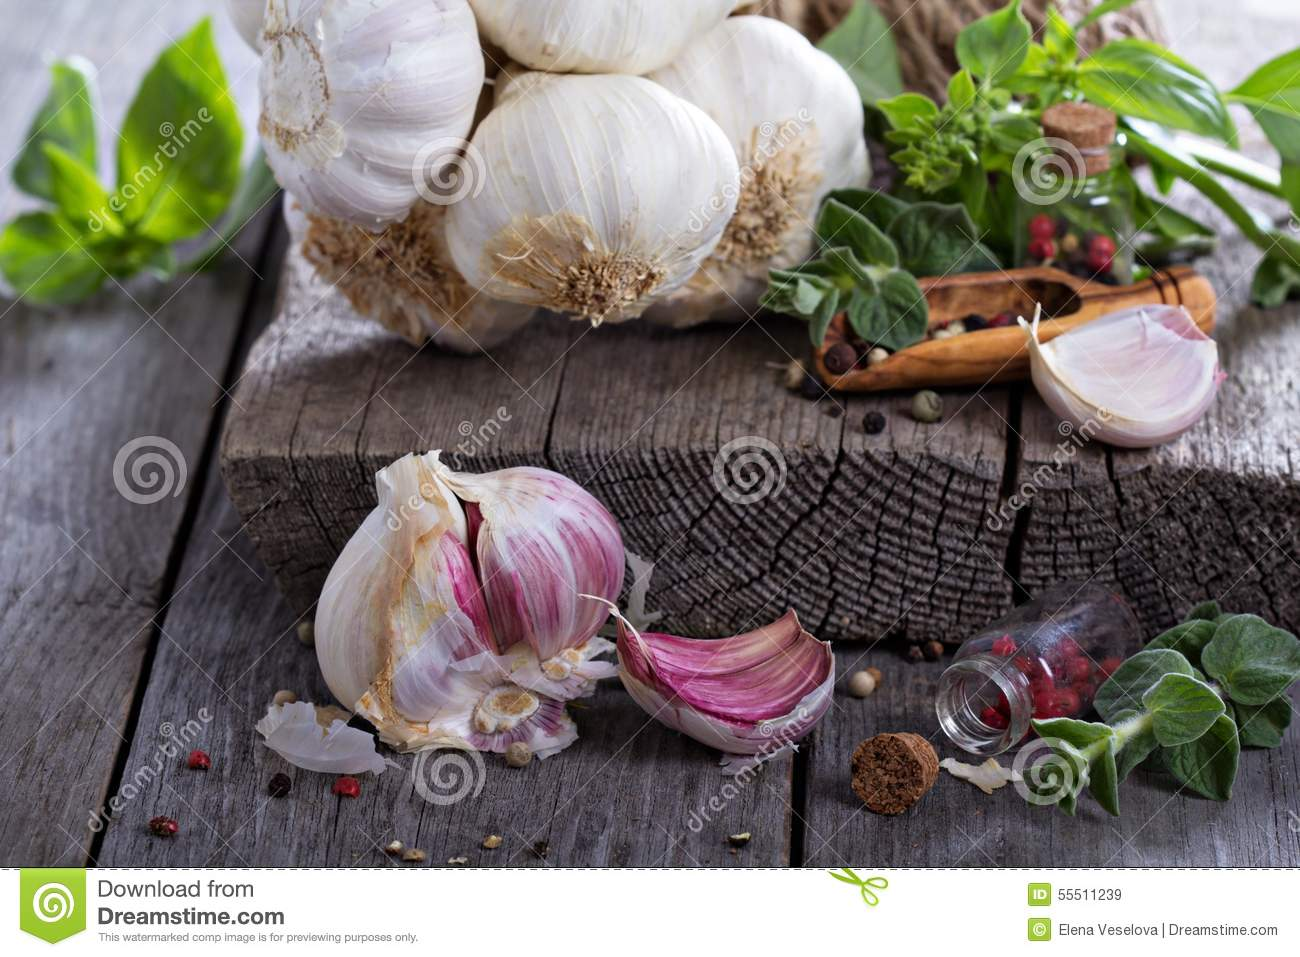 Fresh garlic, spices and salad leaves on table